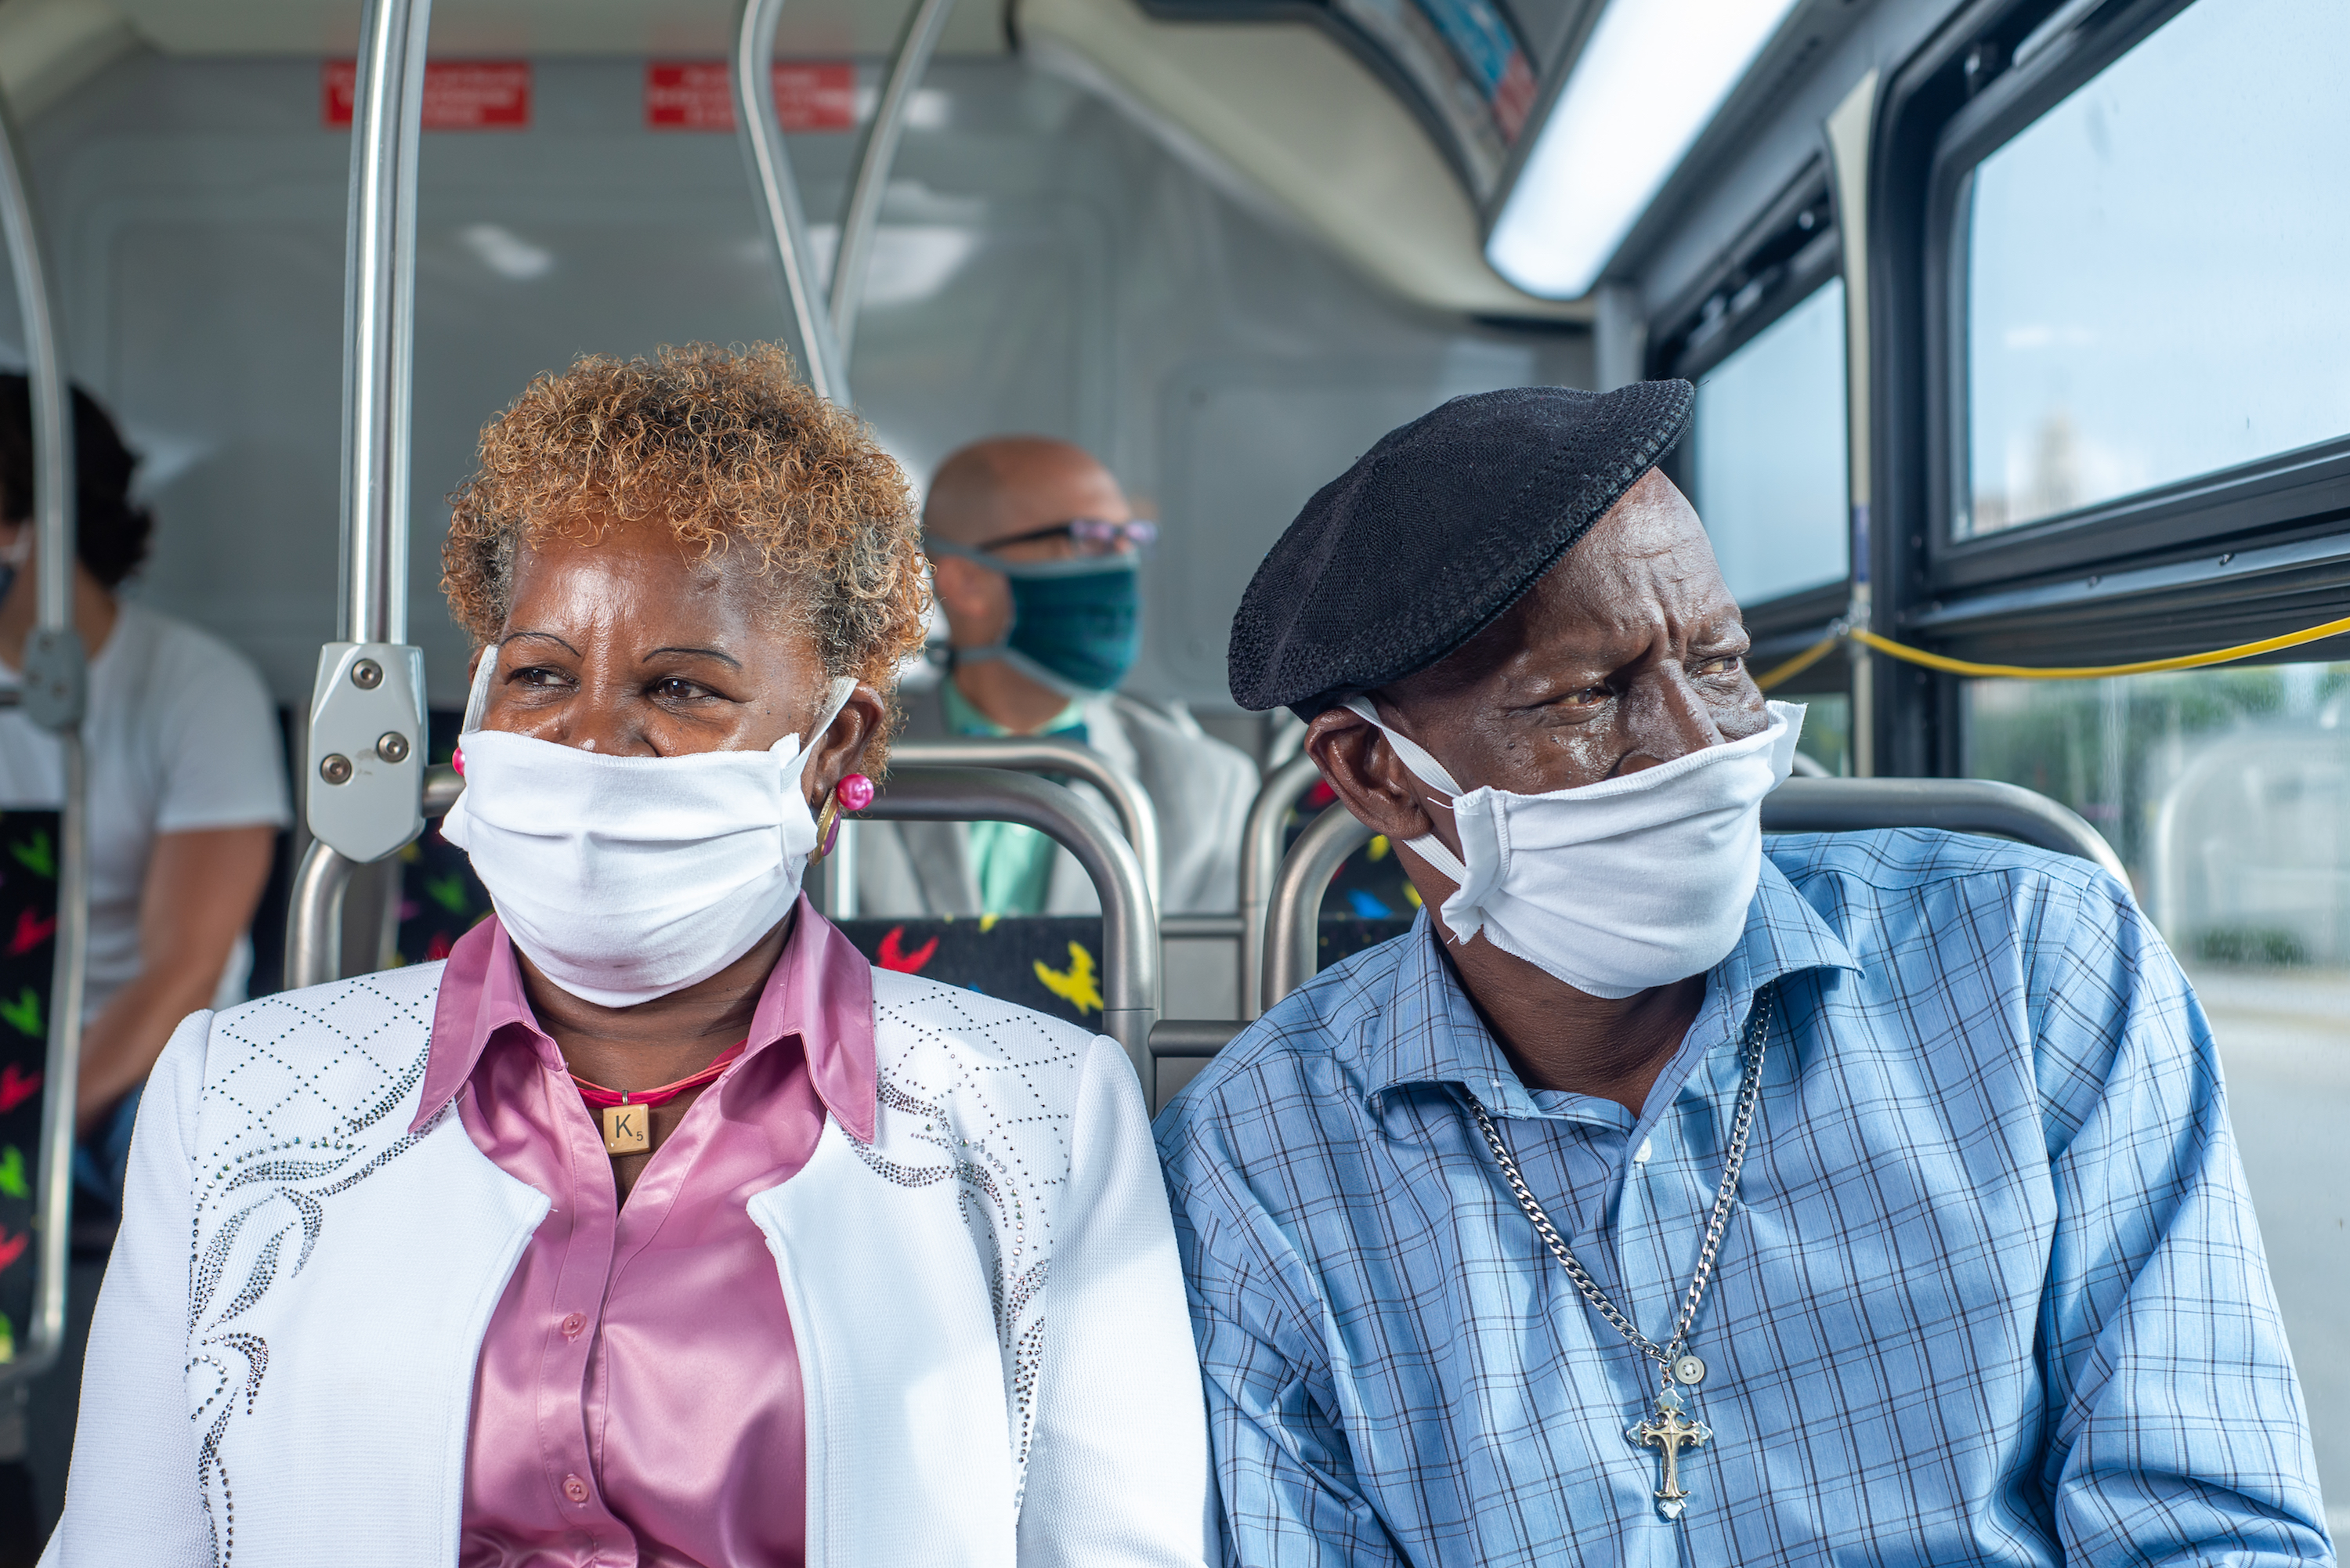 An older Black woman and man sit on a bus and wear masks.